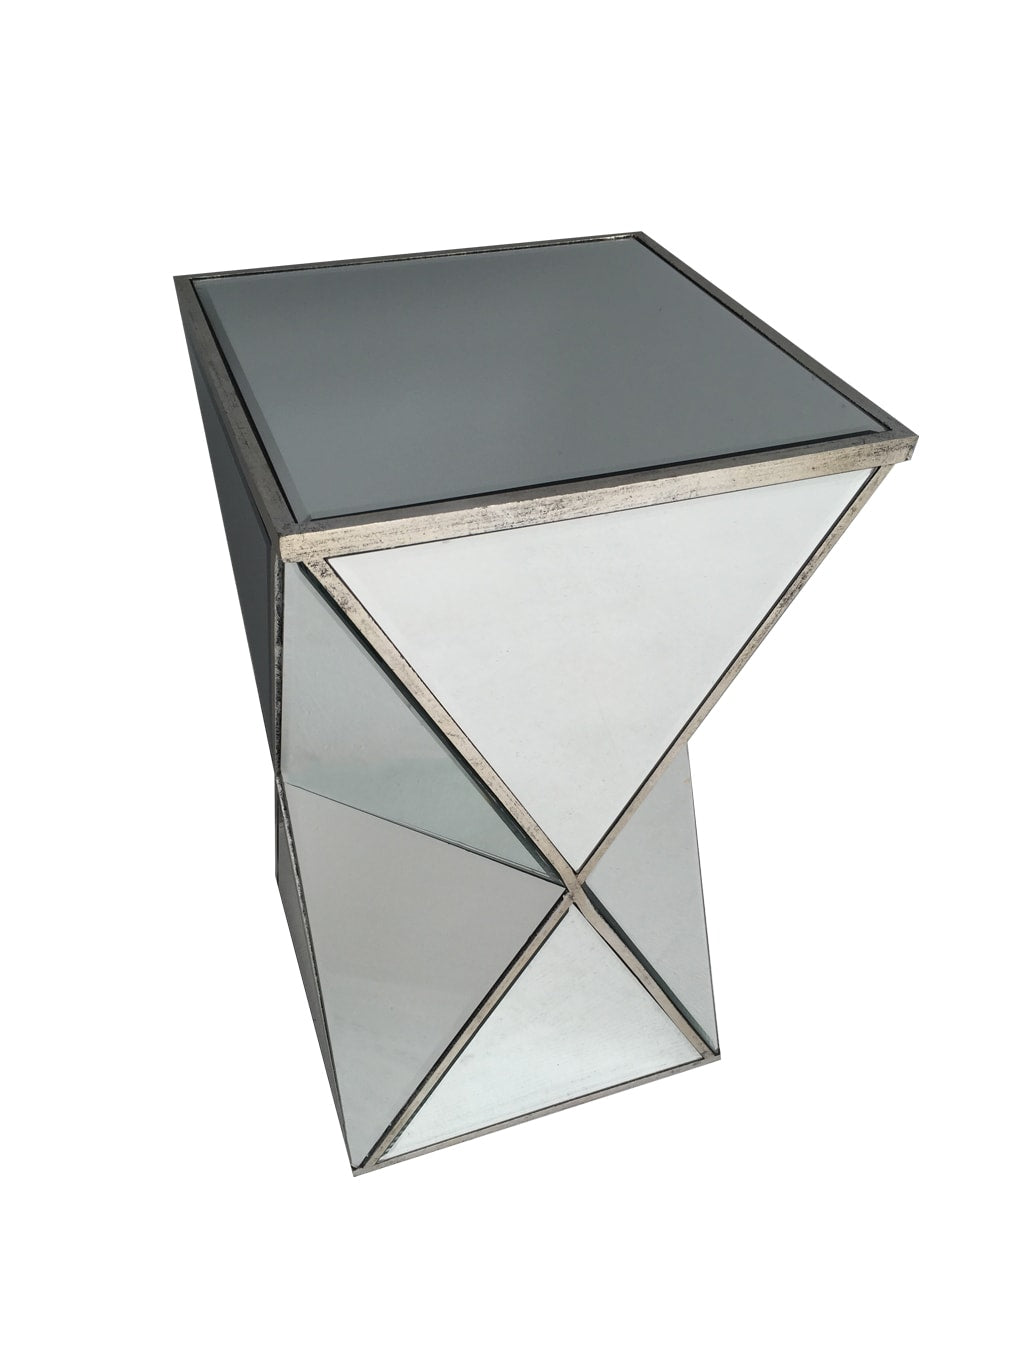 Mirrored end table in geometric shape,  all panels bevelled, wood and mirror, antiqued silver